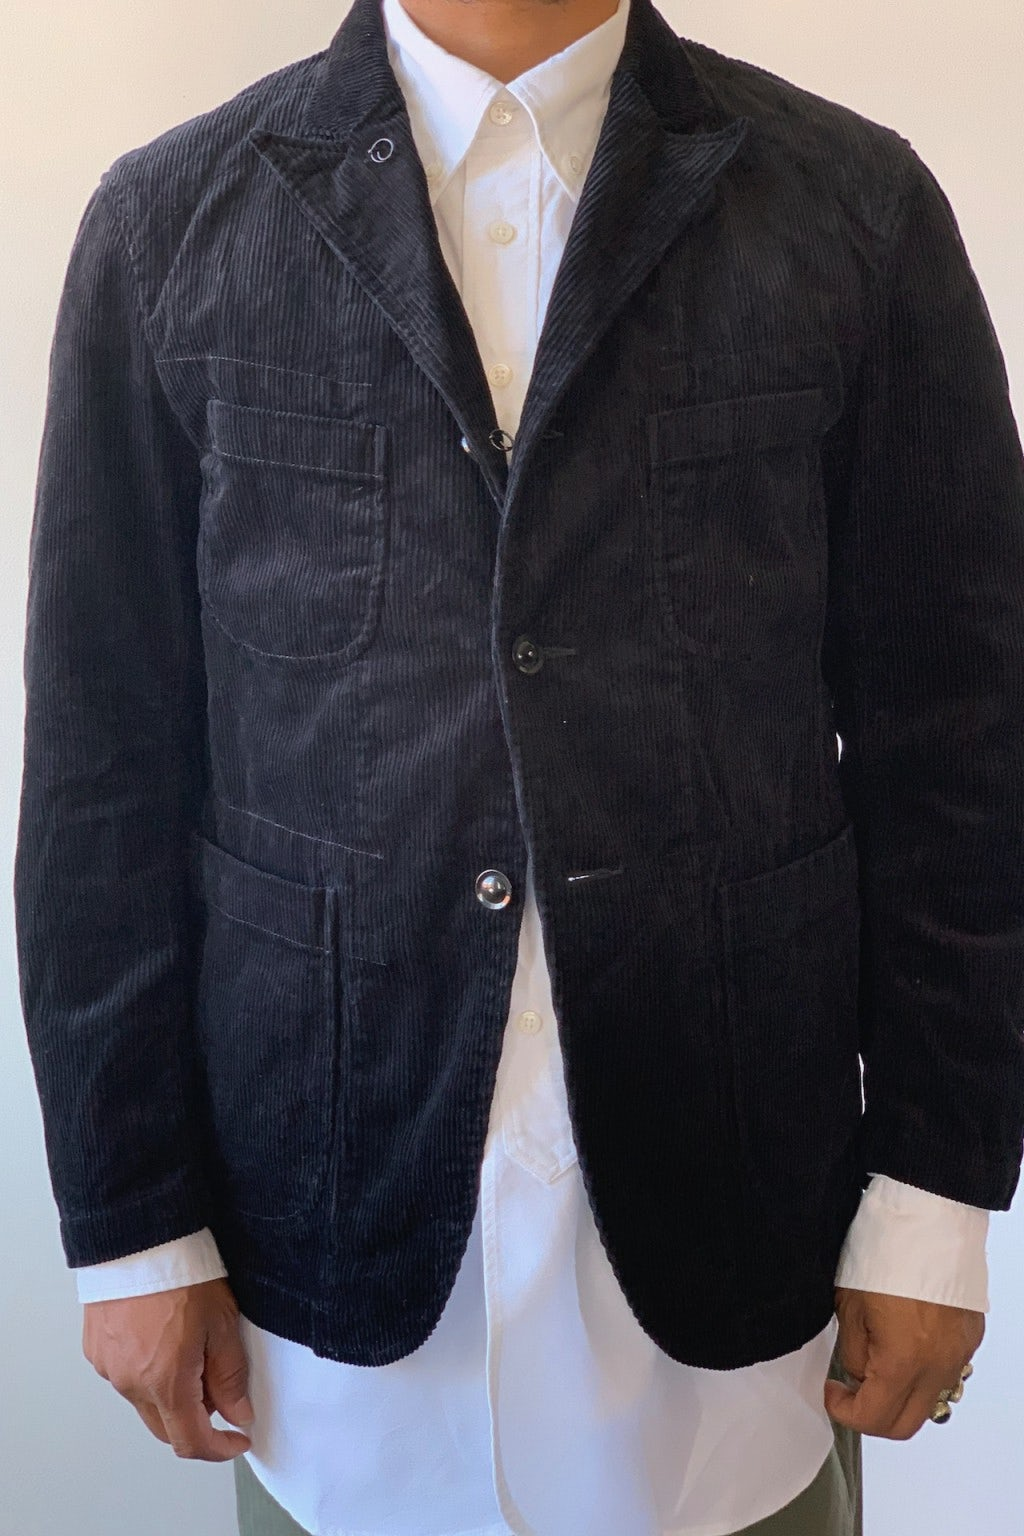 Engineered Garments Bedford Jacket Black 8W Corduroy